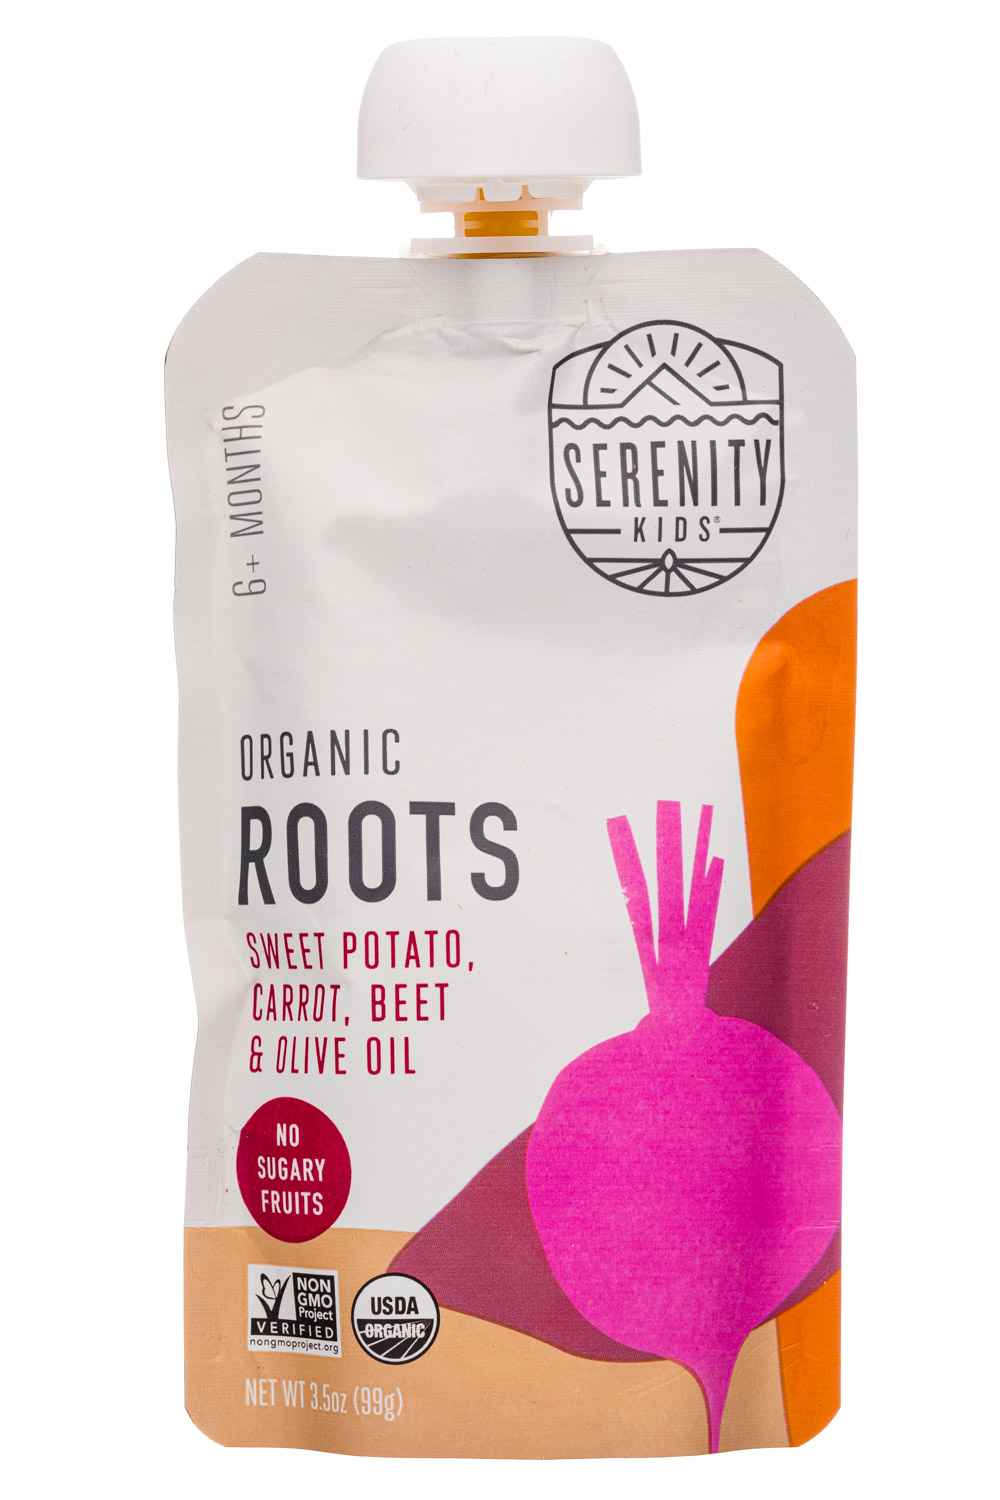 Organic Roots: Sweet Potato, Carrot, Beet & Olive oil